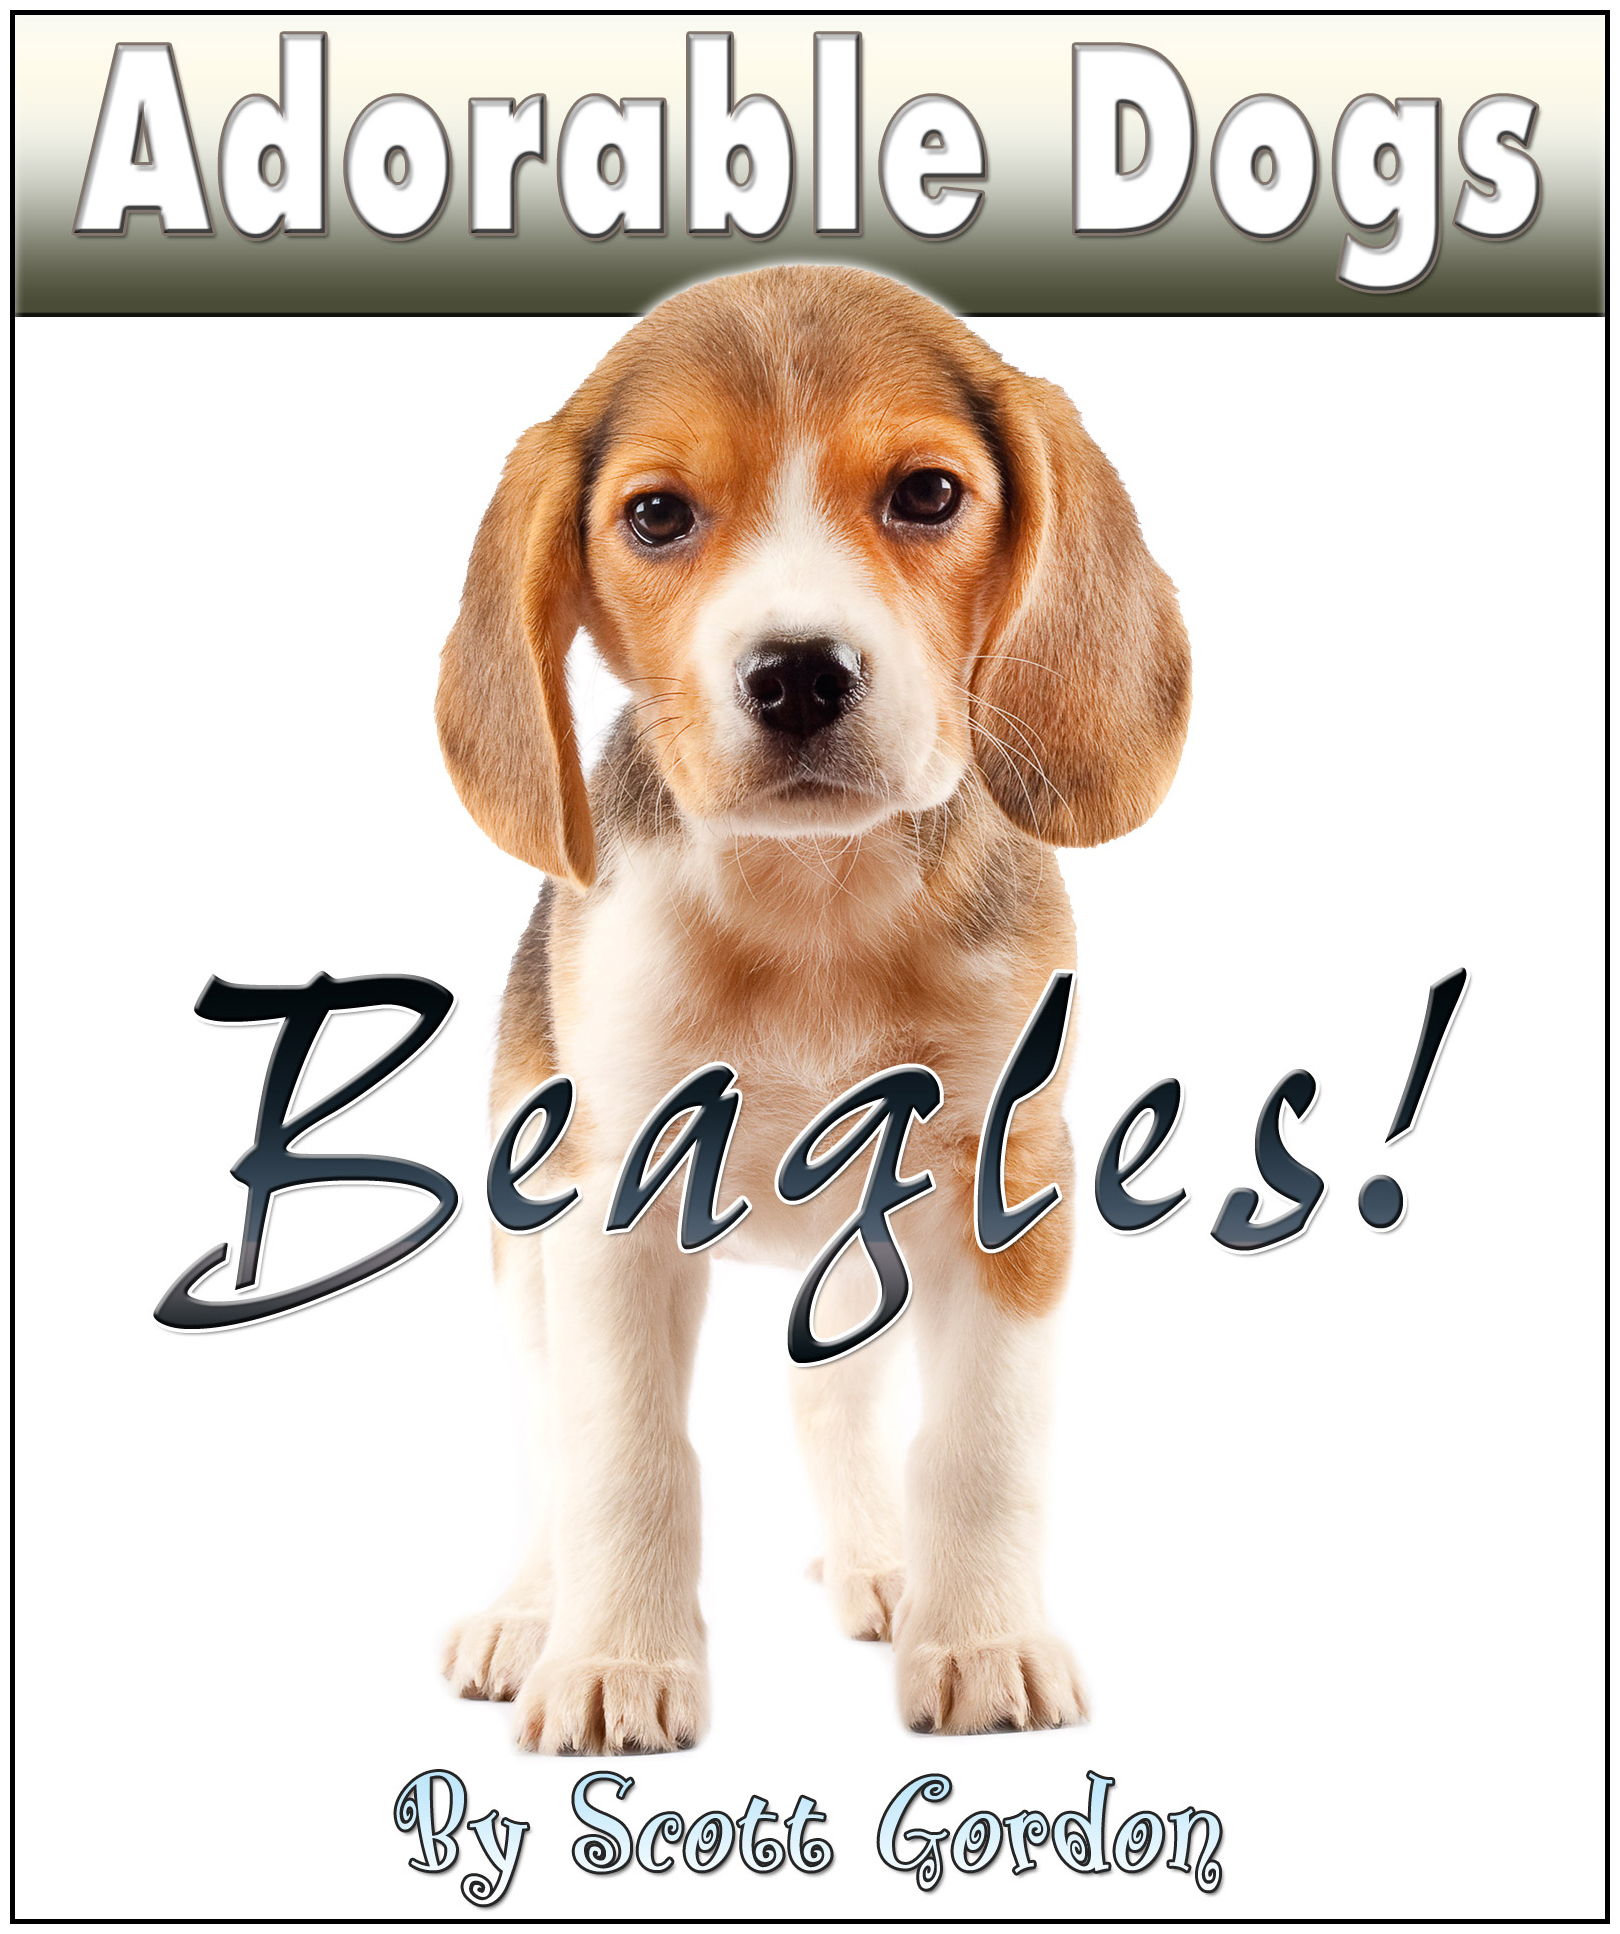 Adorable Dogs: Beagles! By: Scott Gordon